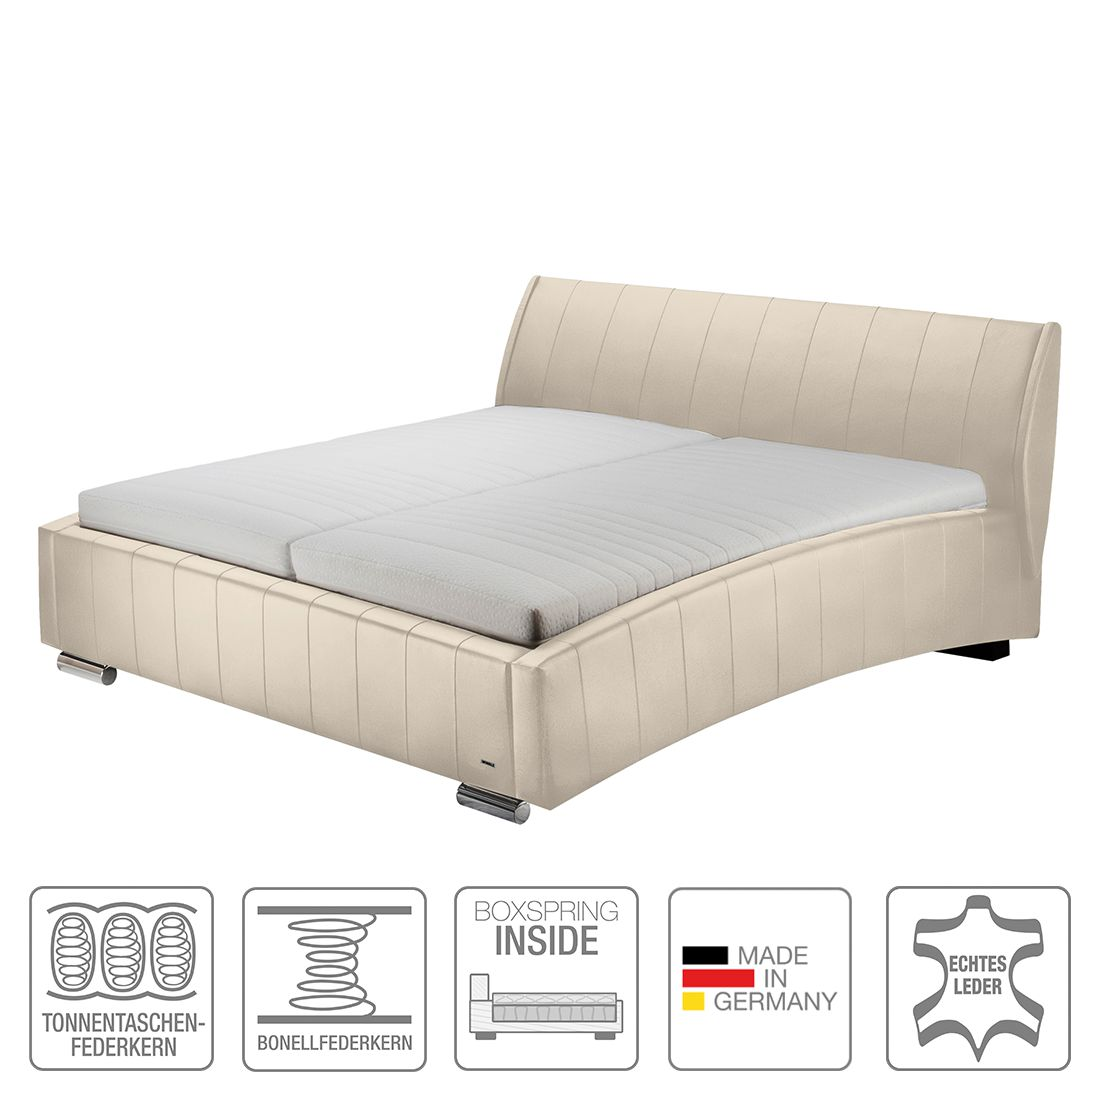 boxspring inside bett sarino echtleder 180 x 200cm h2 bis 80 kg. Black Bedroom Furniture Sets. Home Design Ideas